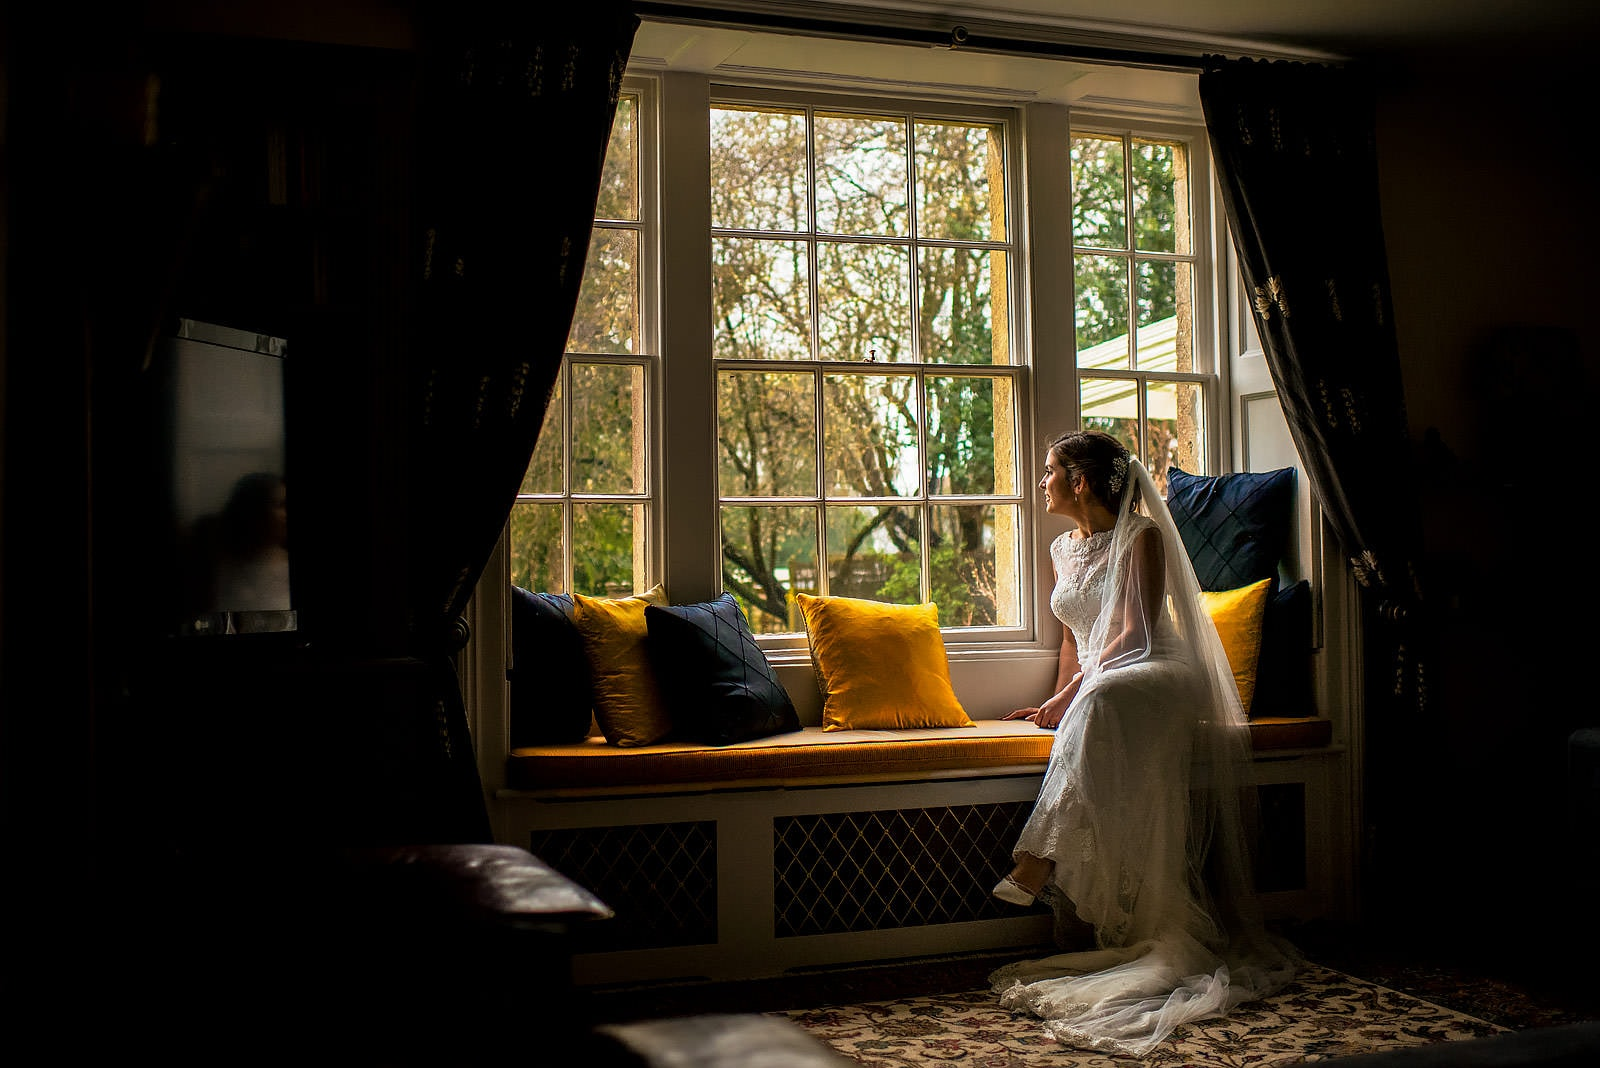 The bride peering through the window